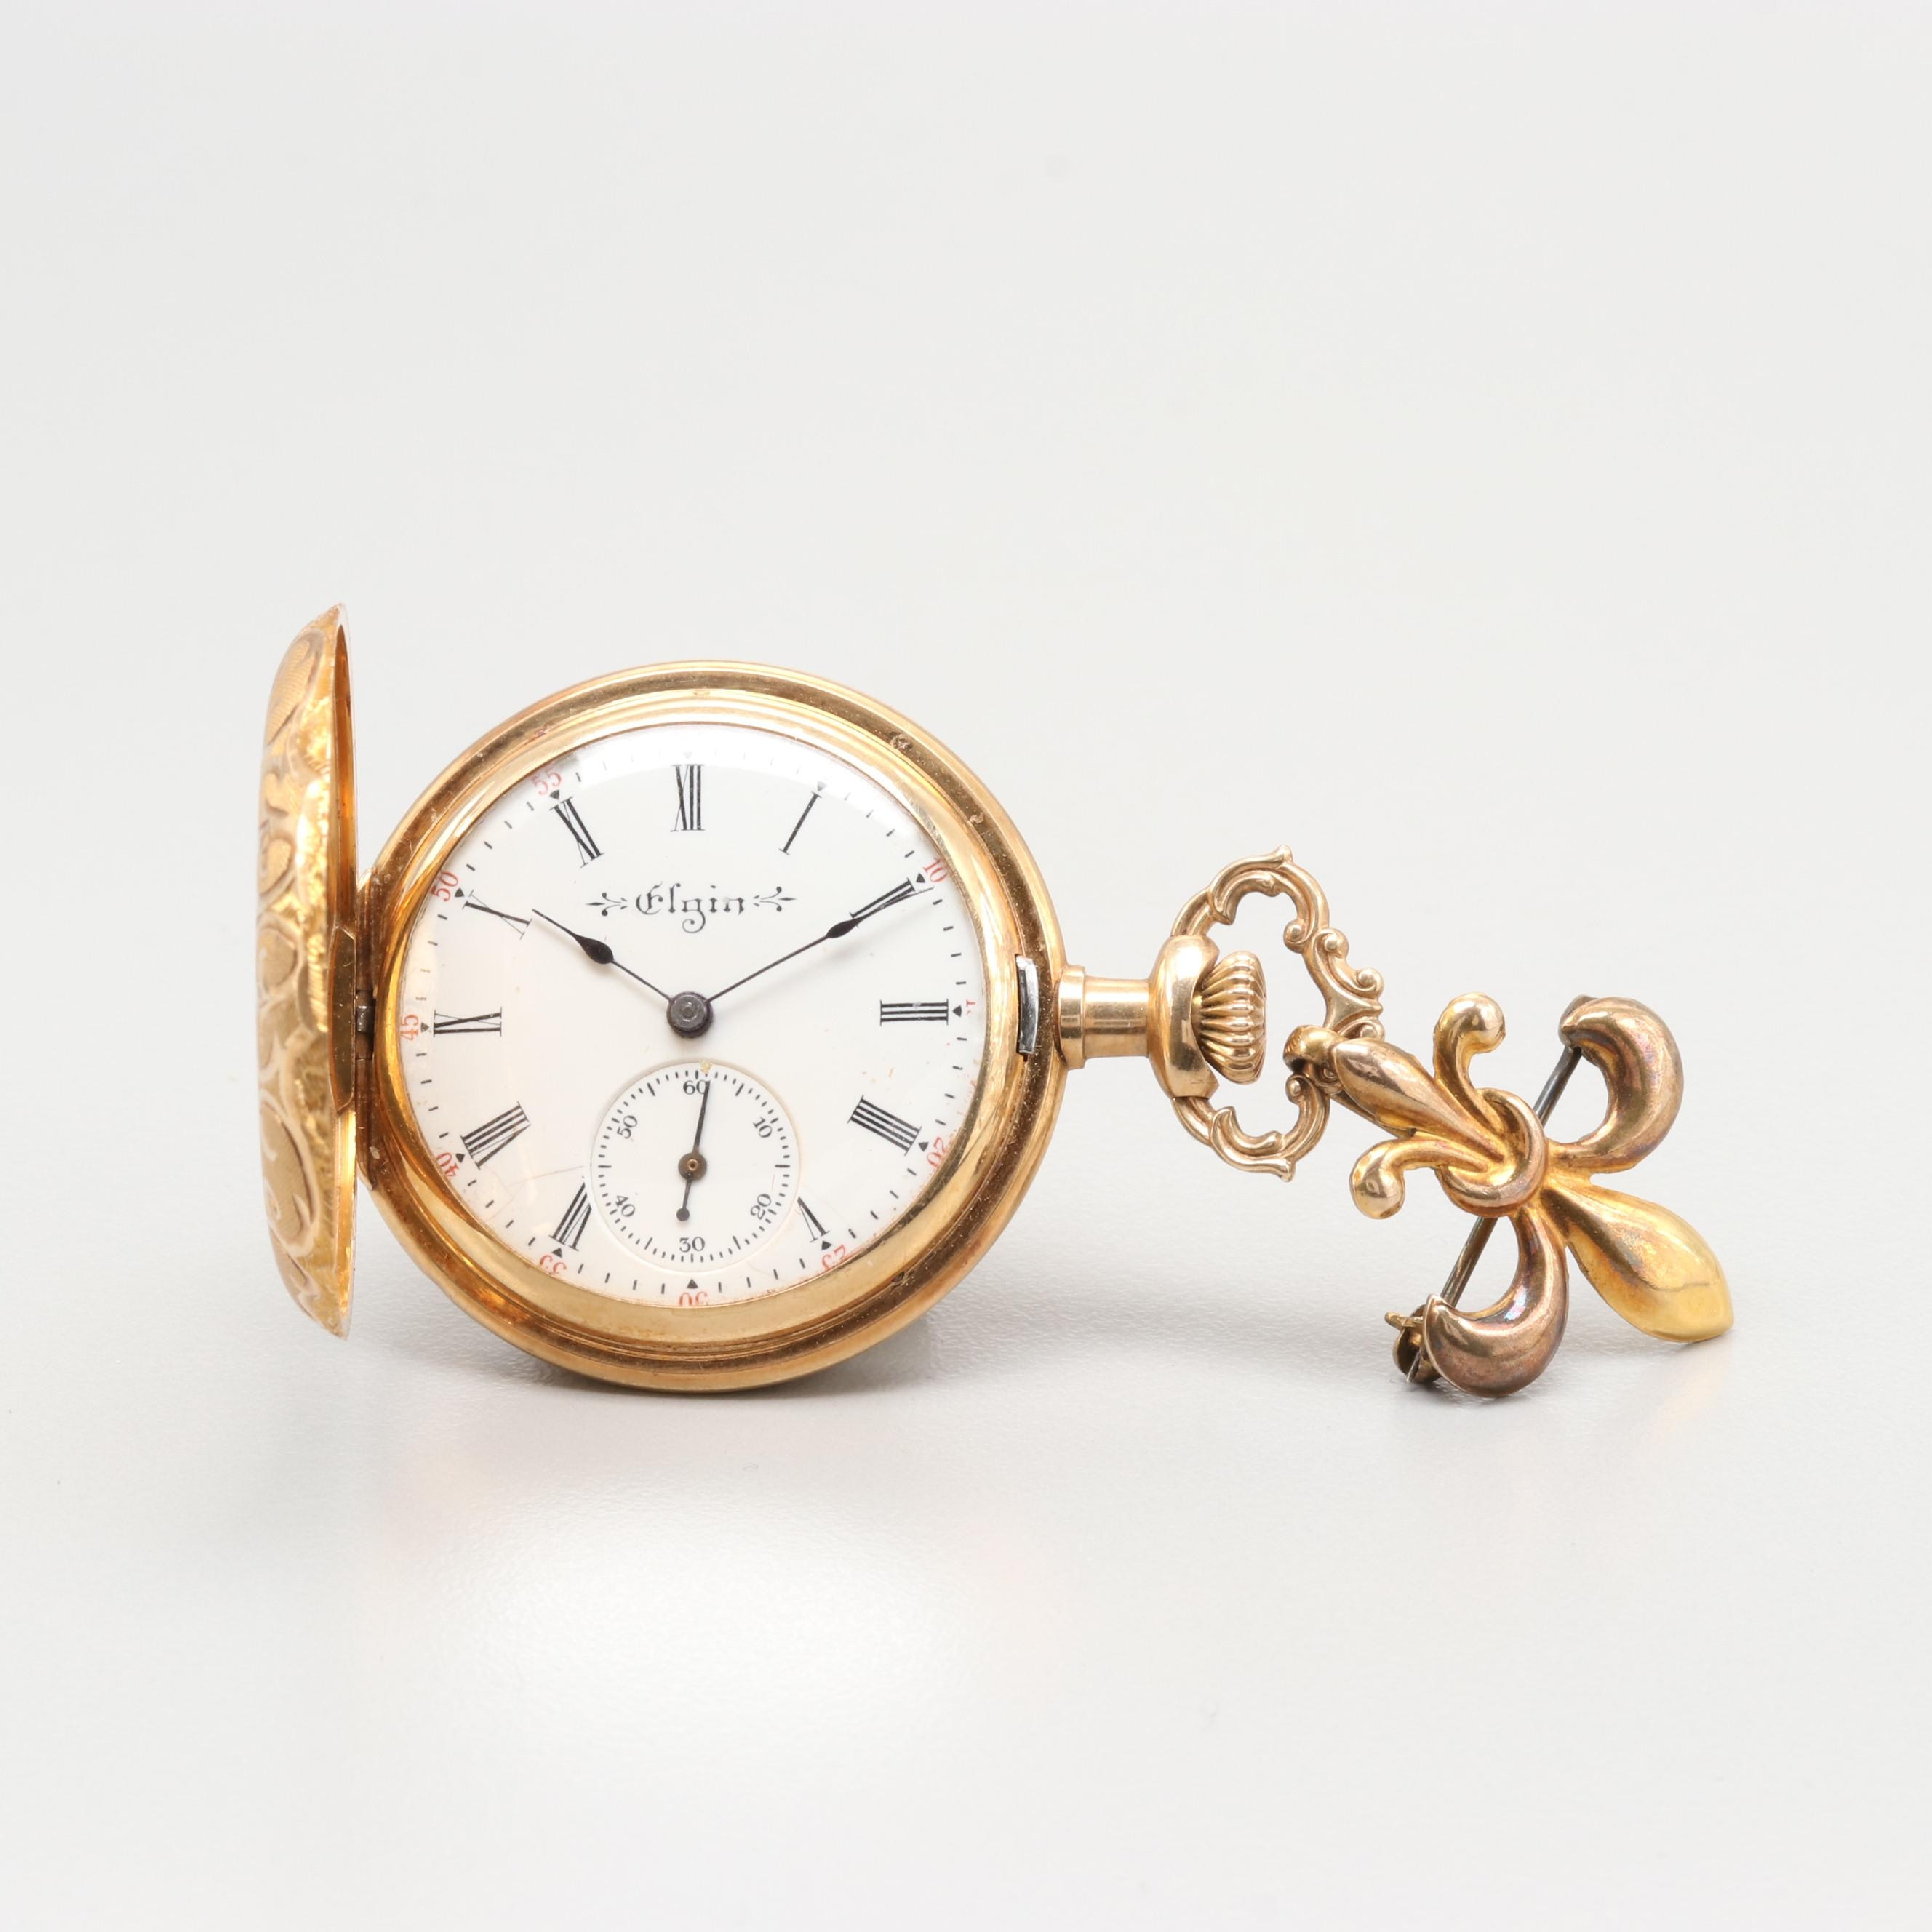 Elgin 14K Gold Hunting Case Pocket Watch With Fleur de Lis Pin, Circa 1904